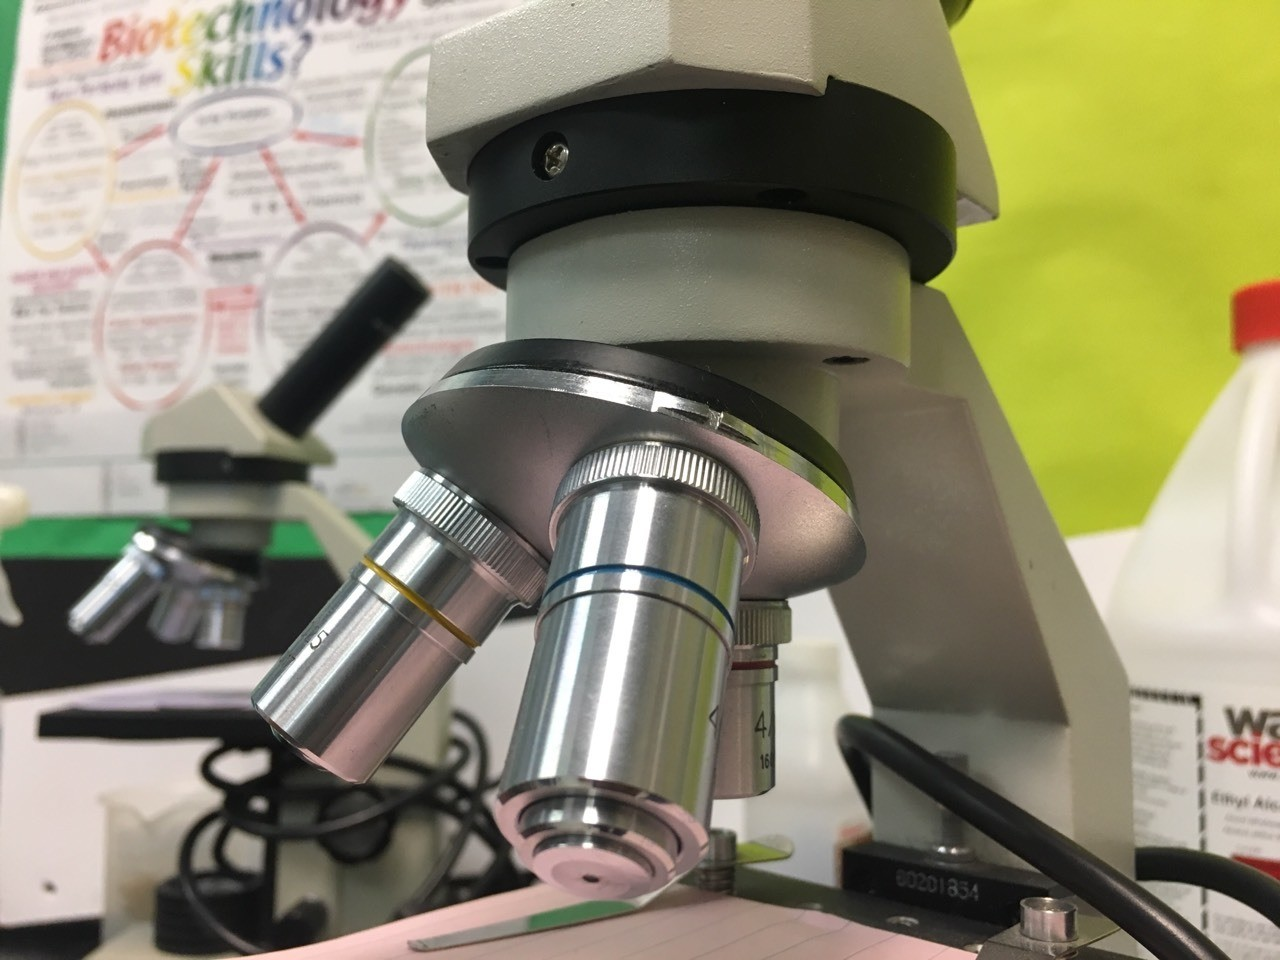 I would add this to new learning particularly because it was quite interesting to become knowledgeable about the parts of a microscope. It was unique and fascinating as I would see more and more from swiveling, tilting and turning the microscope.